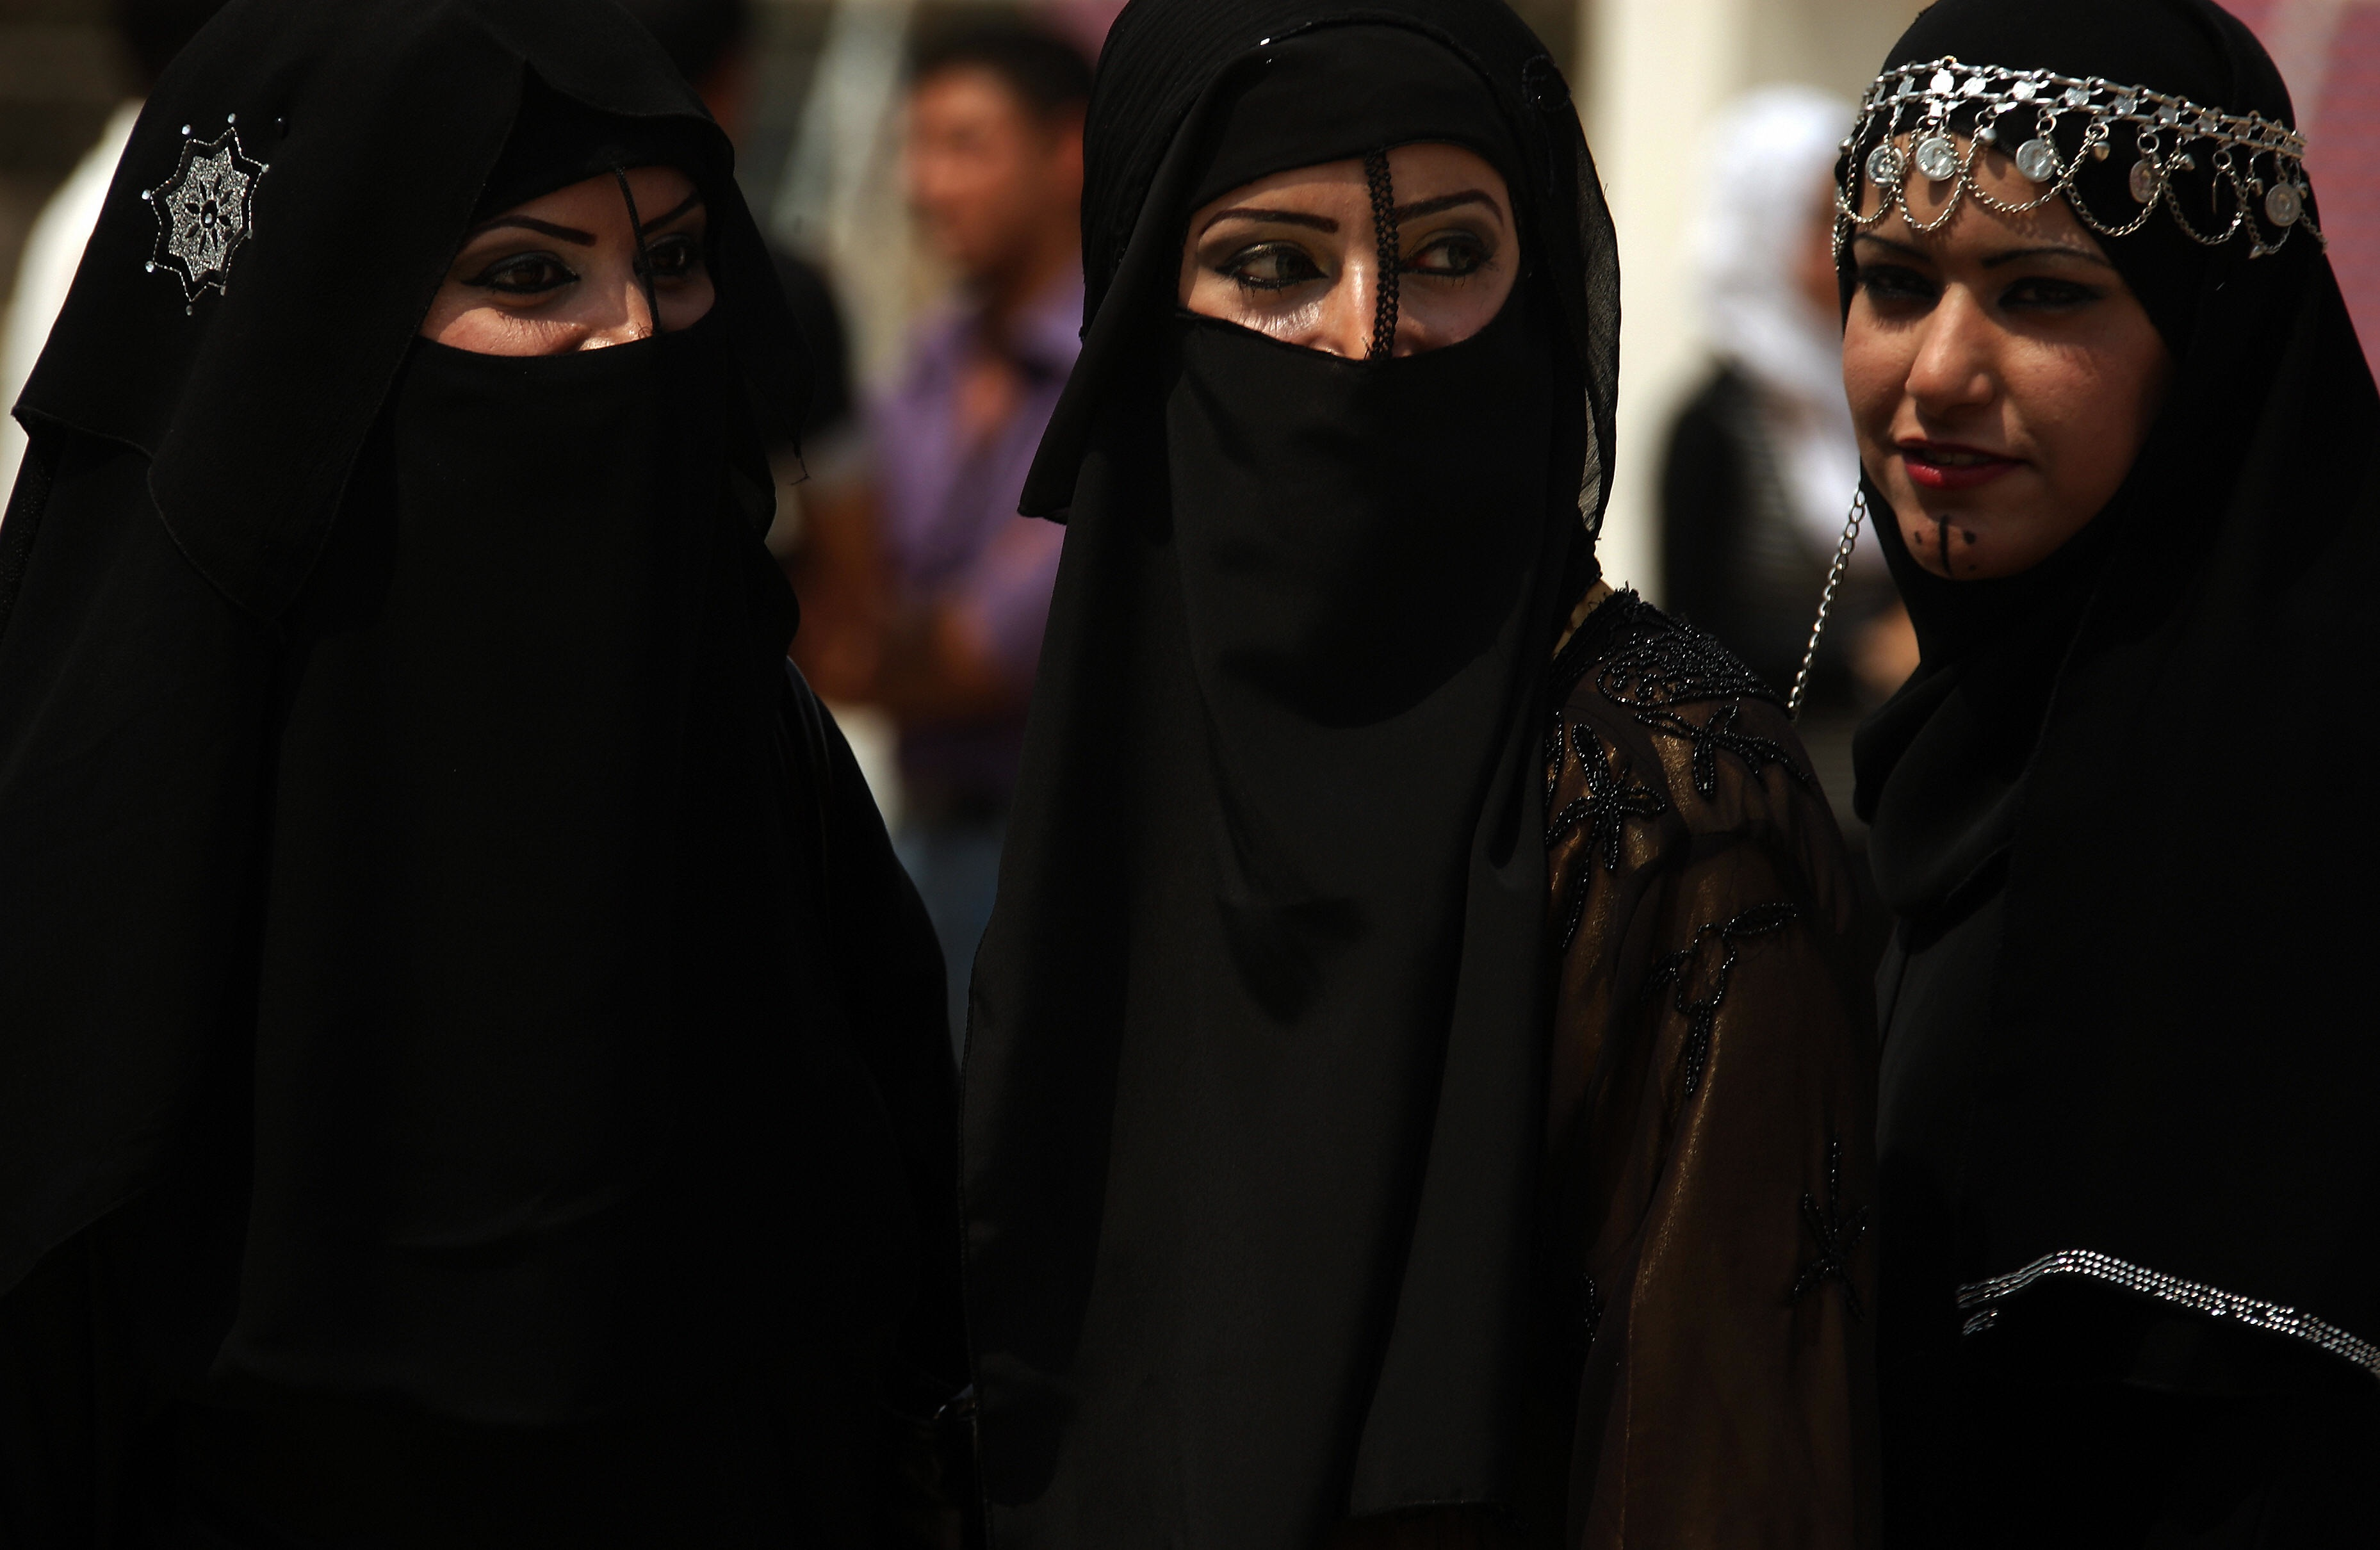 PATRICK BAZ/AFP/Getty Images. Iraqi female students wearing Arab folkloric dresses and Bedouin masks take part in a graduation party at the Baghdad IT and Technology University as they celebrate on April 06, 2009.